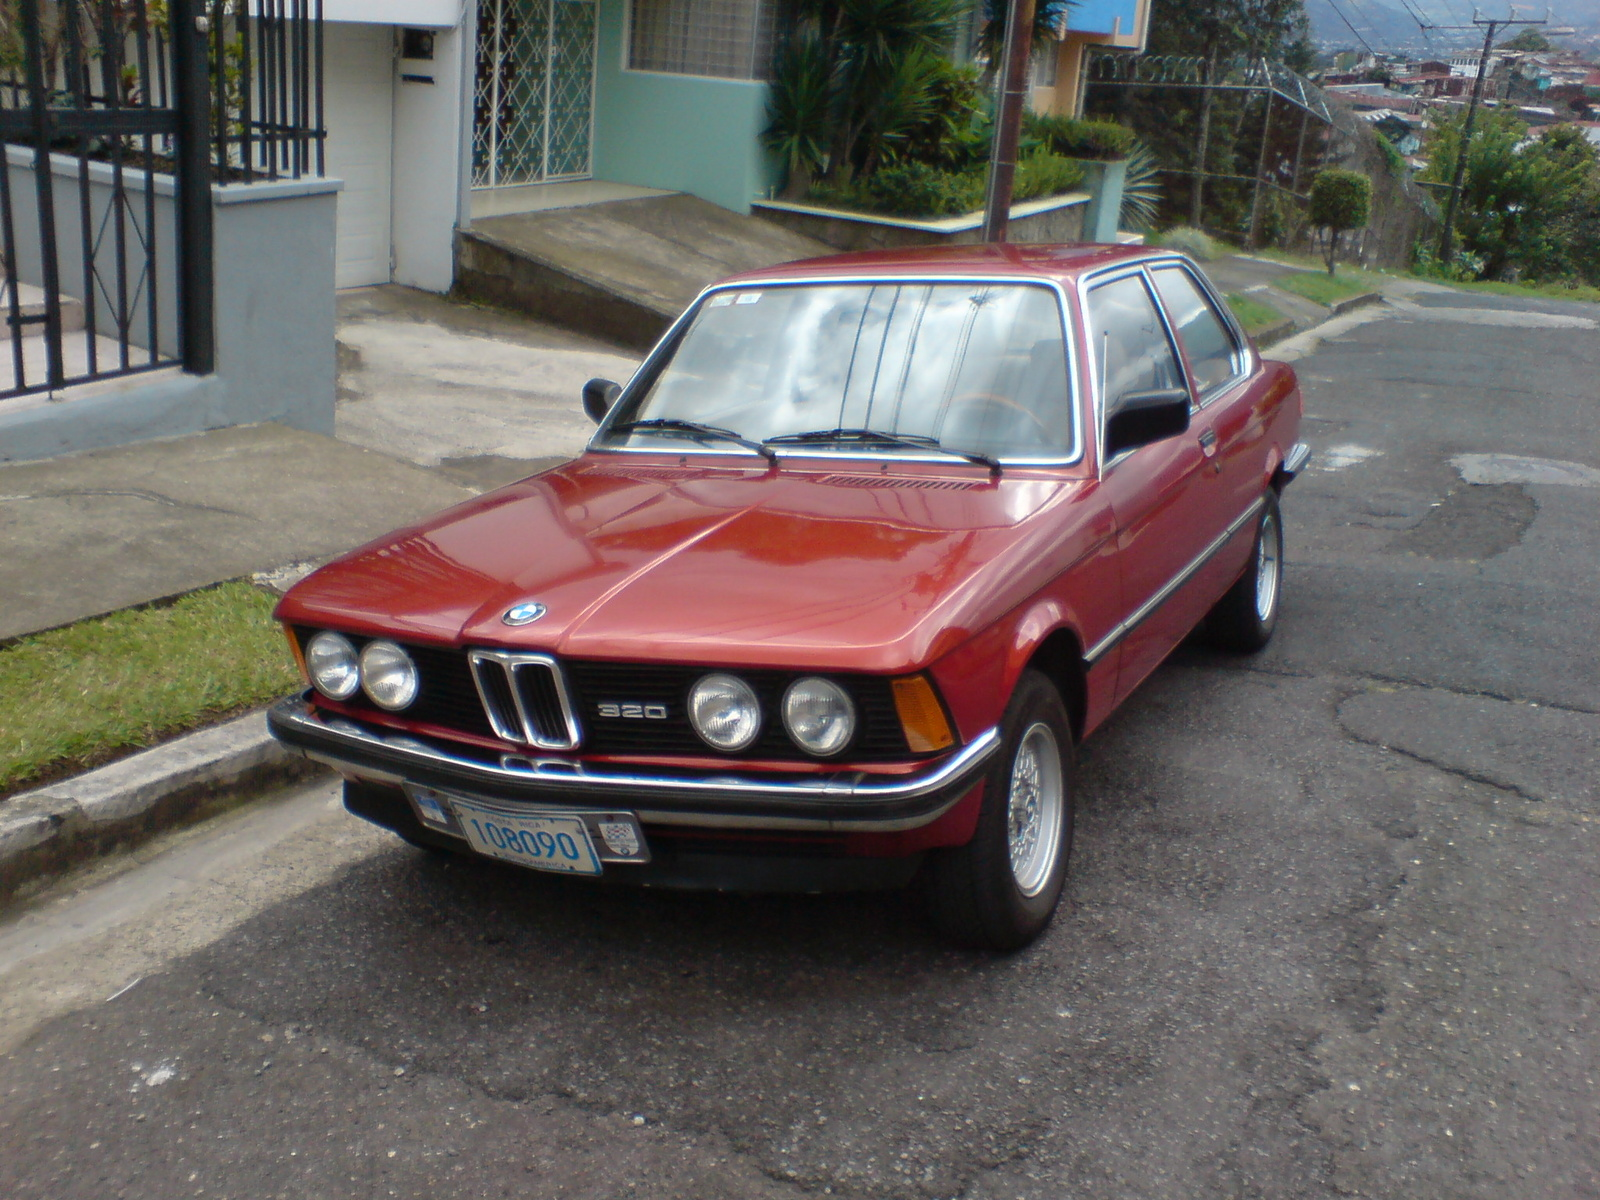 BMW 3 series 315 1981 photo - 6